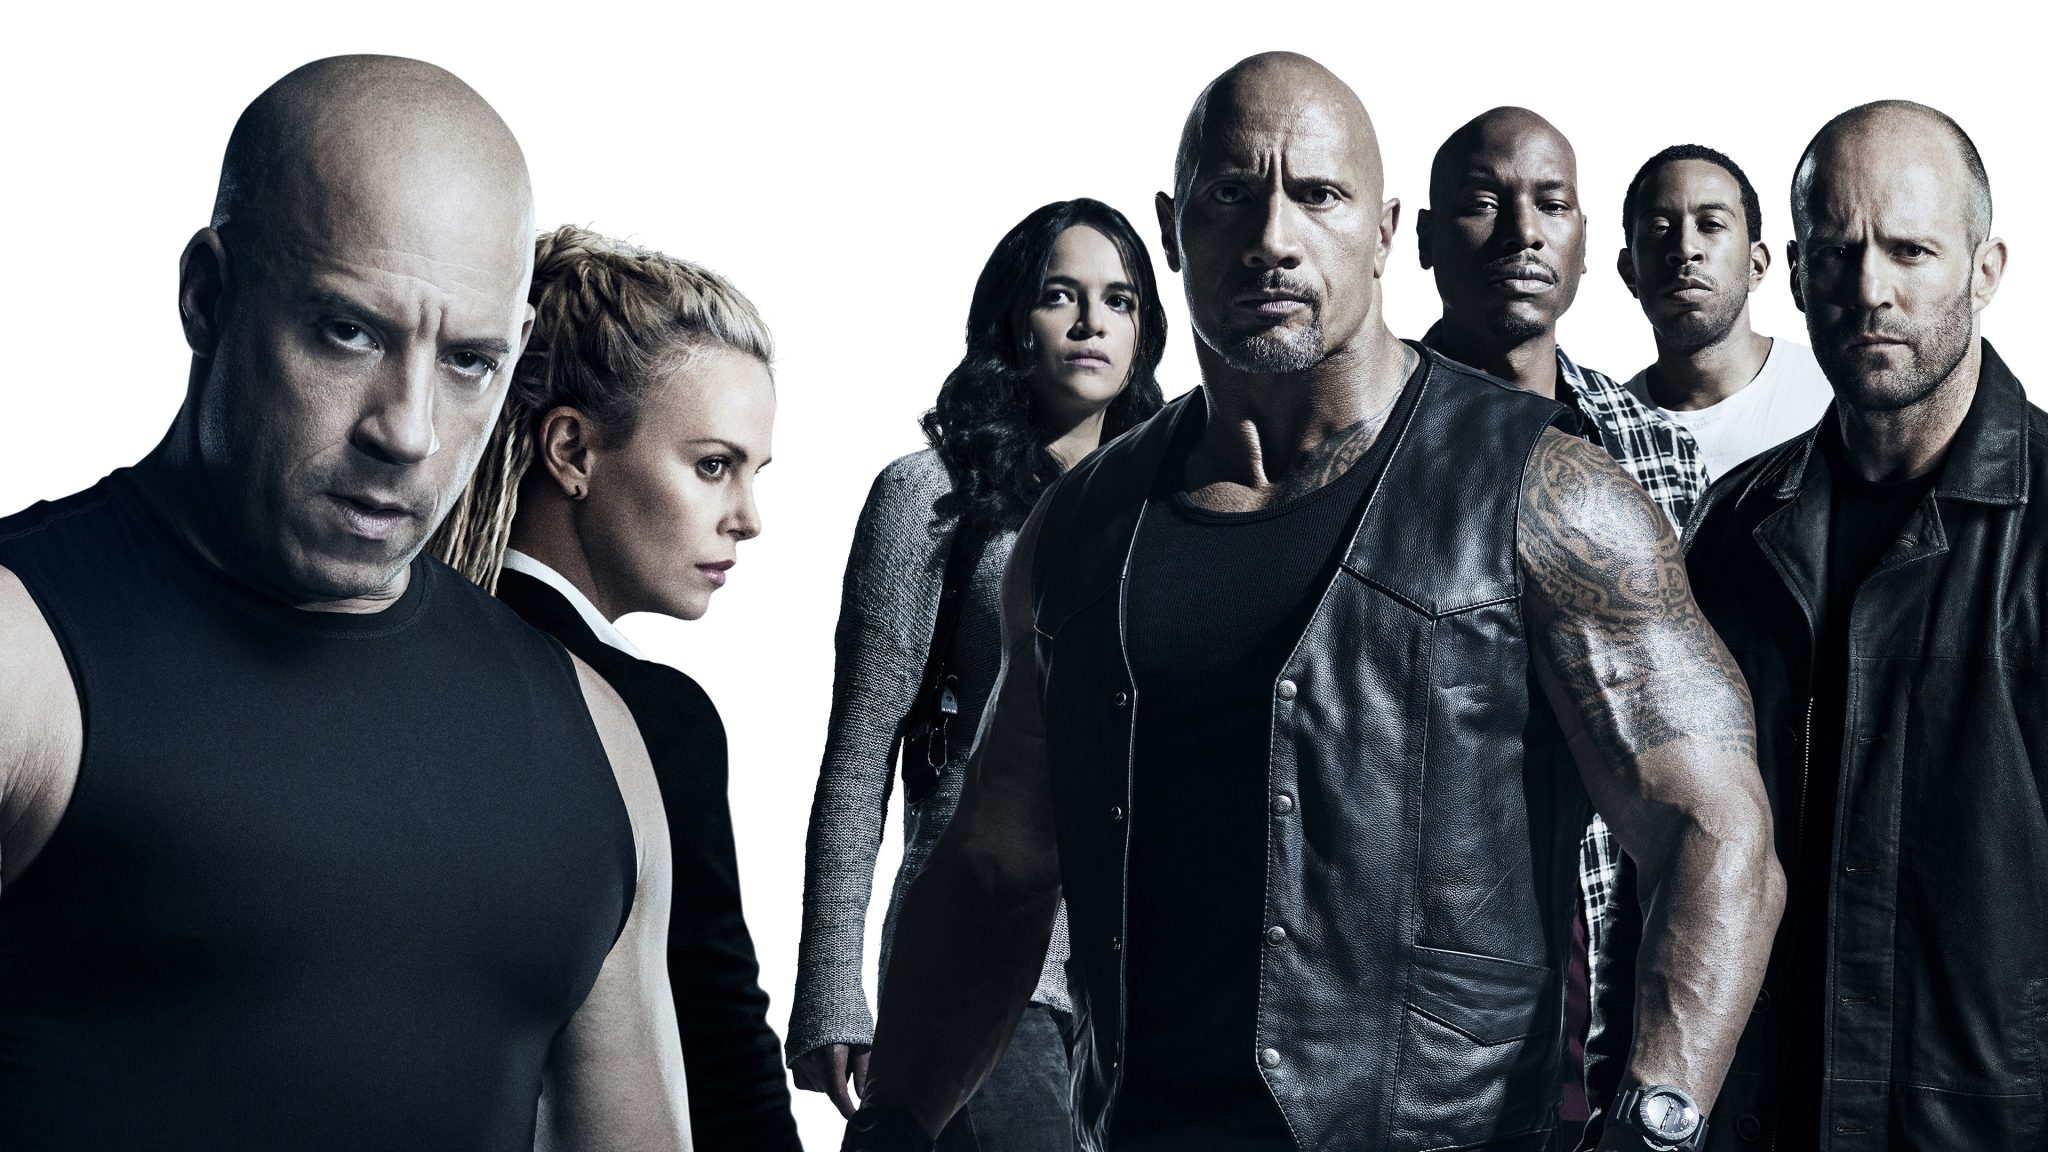 'The Fate of the Furious' Is Both Better And Worse Than Its Predecessors